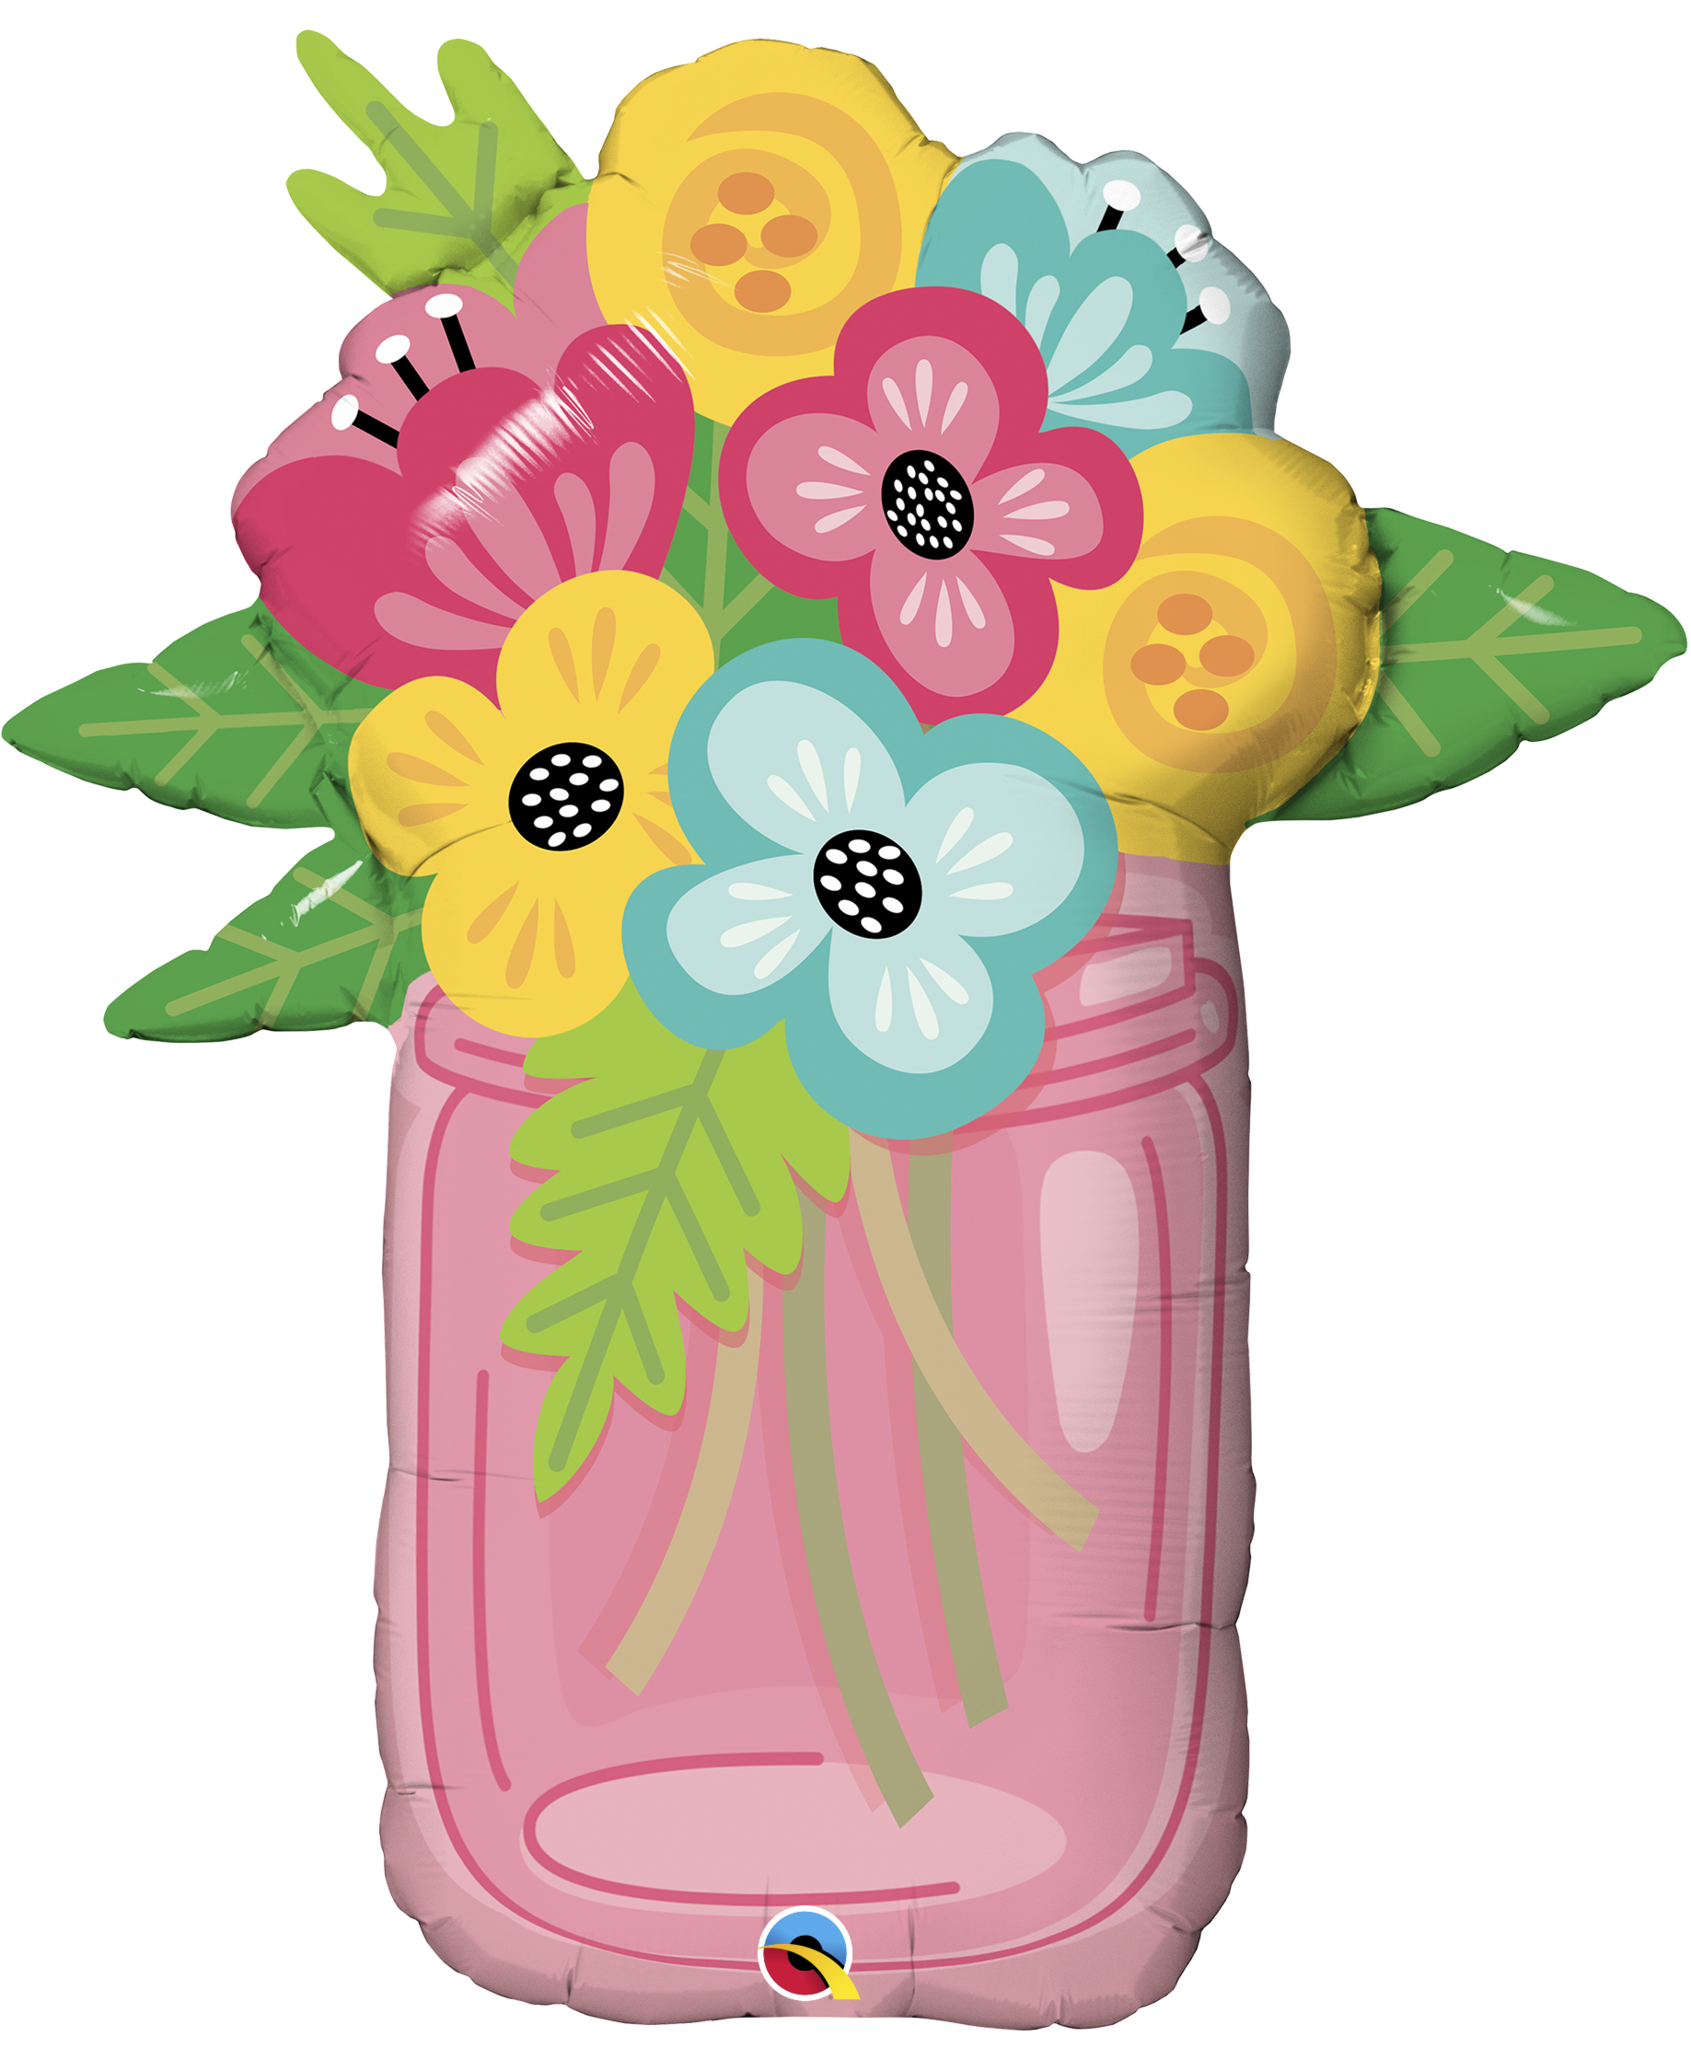 shape foil bouquet. Mason jar with flowers png royalty free stock